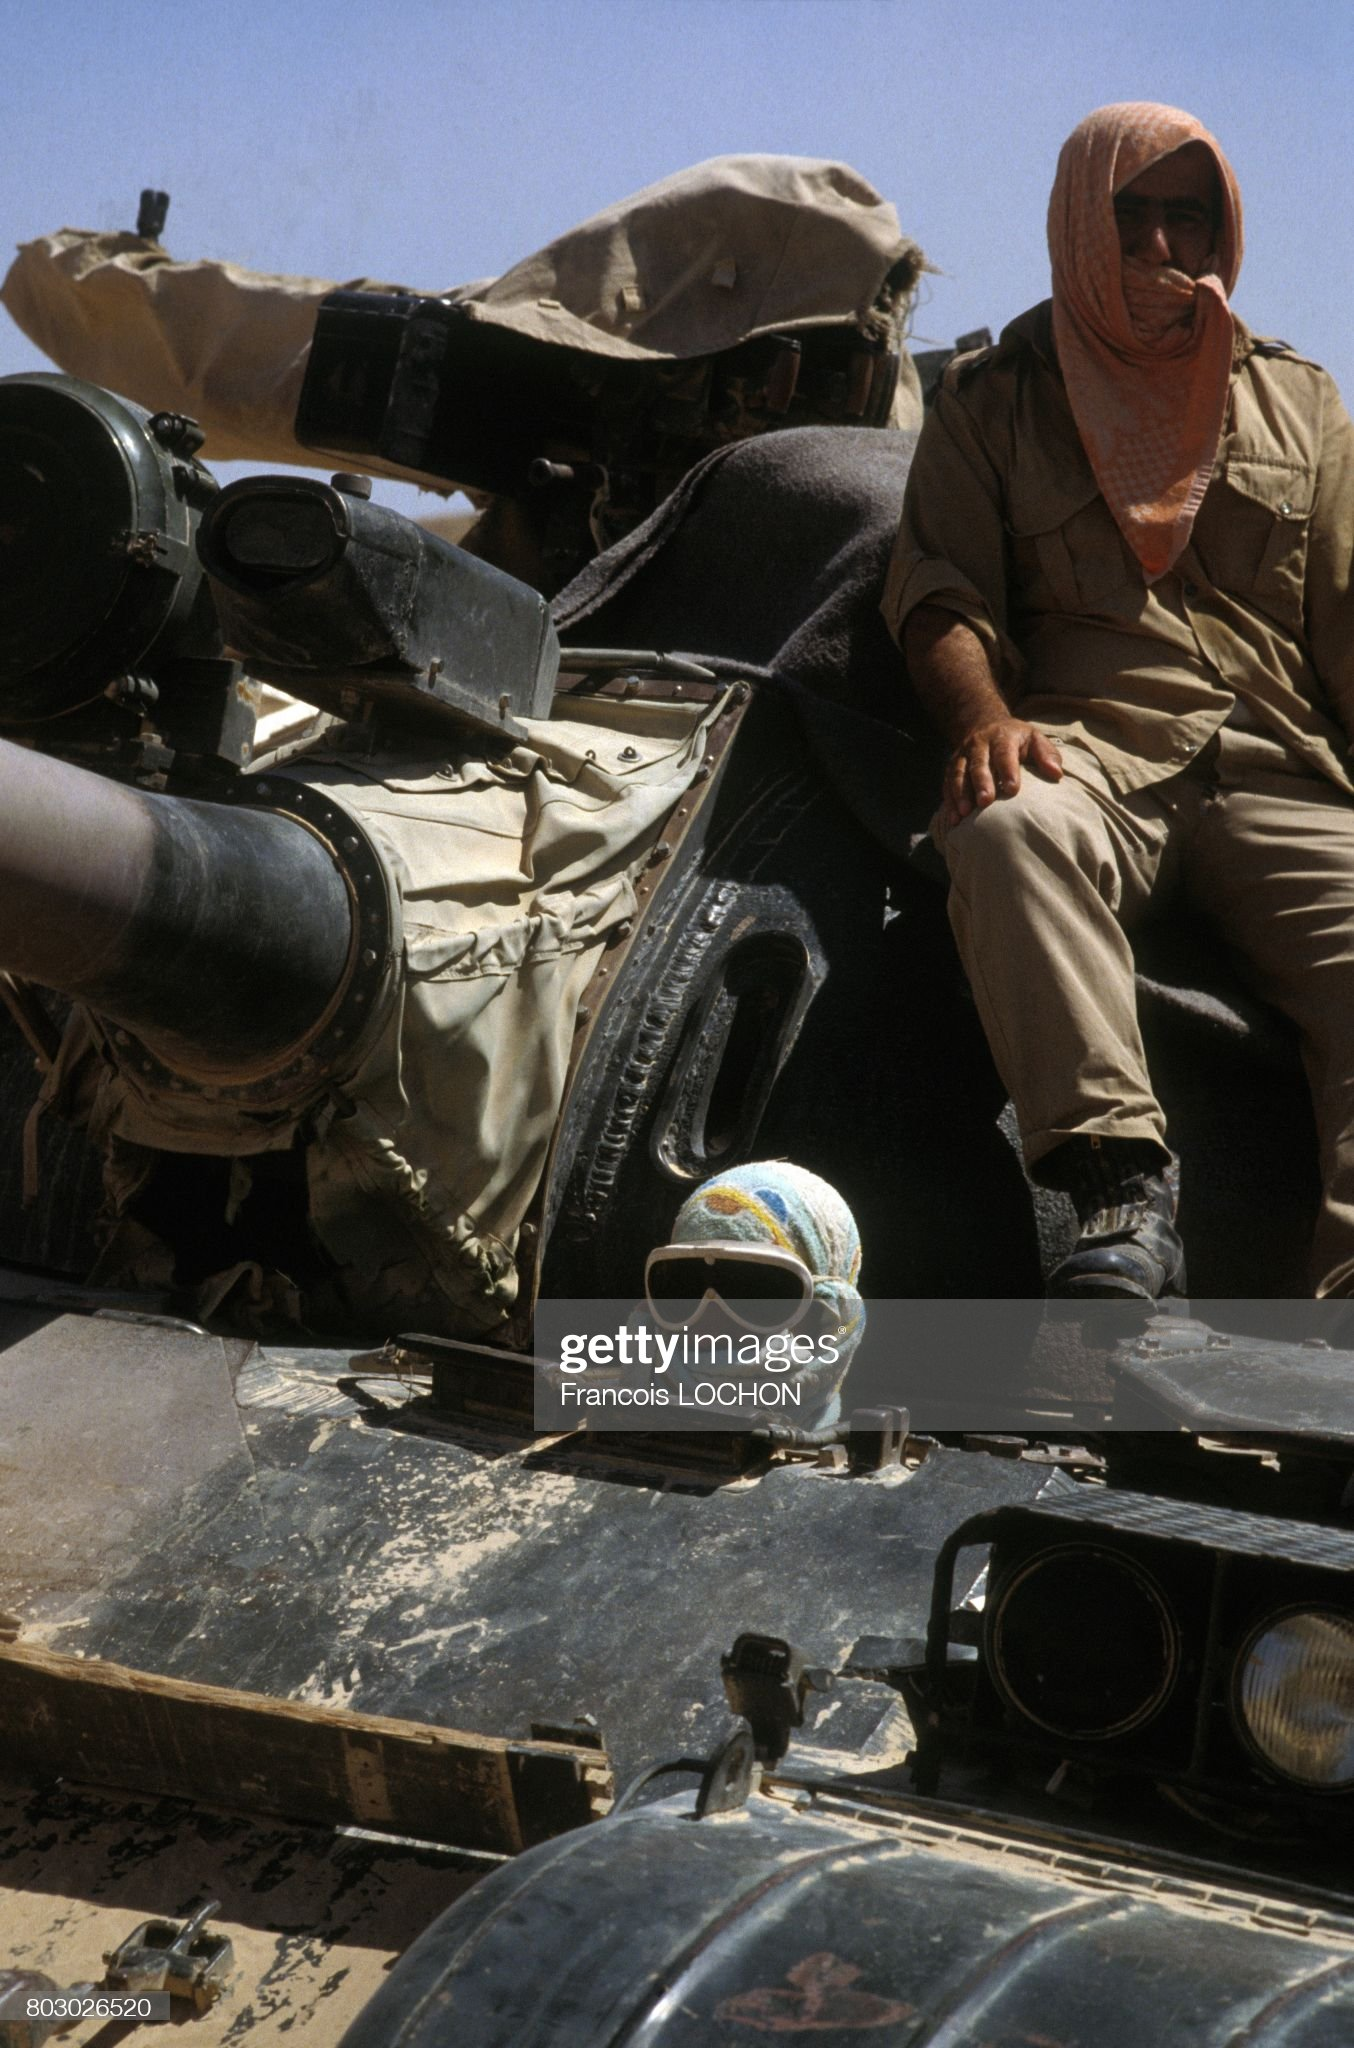 https://media.gettyimages.com/photos/iraqi-troops-seizing-tanks-from-the-iran-army-in-zubeidat-area-on-19-picture-id803026520?s=2048x2048